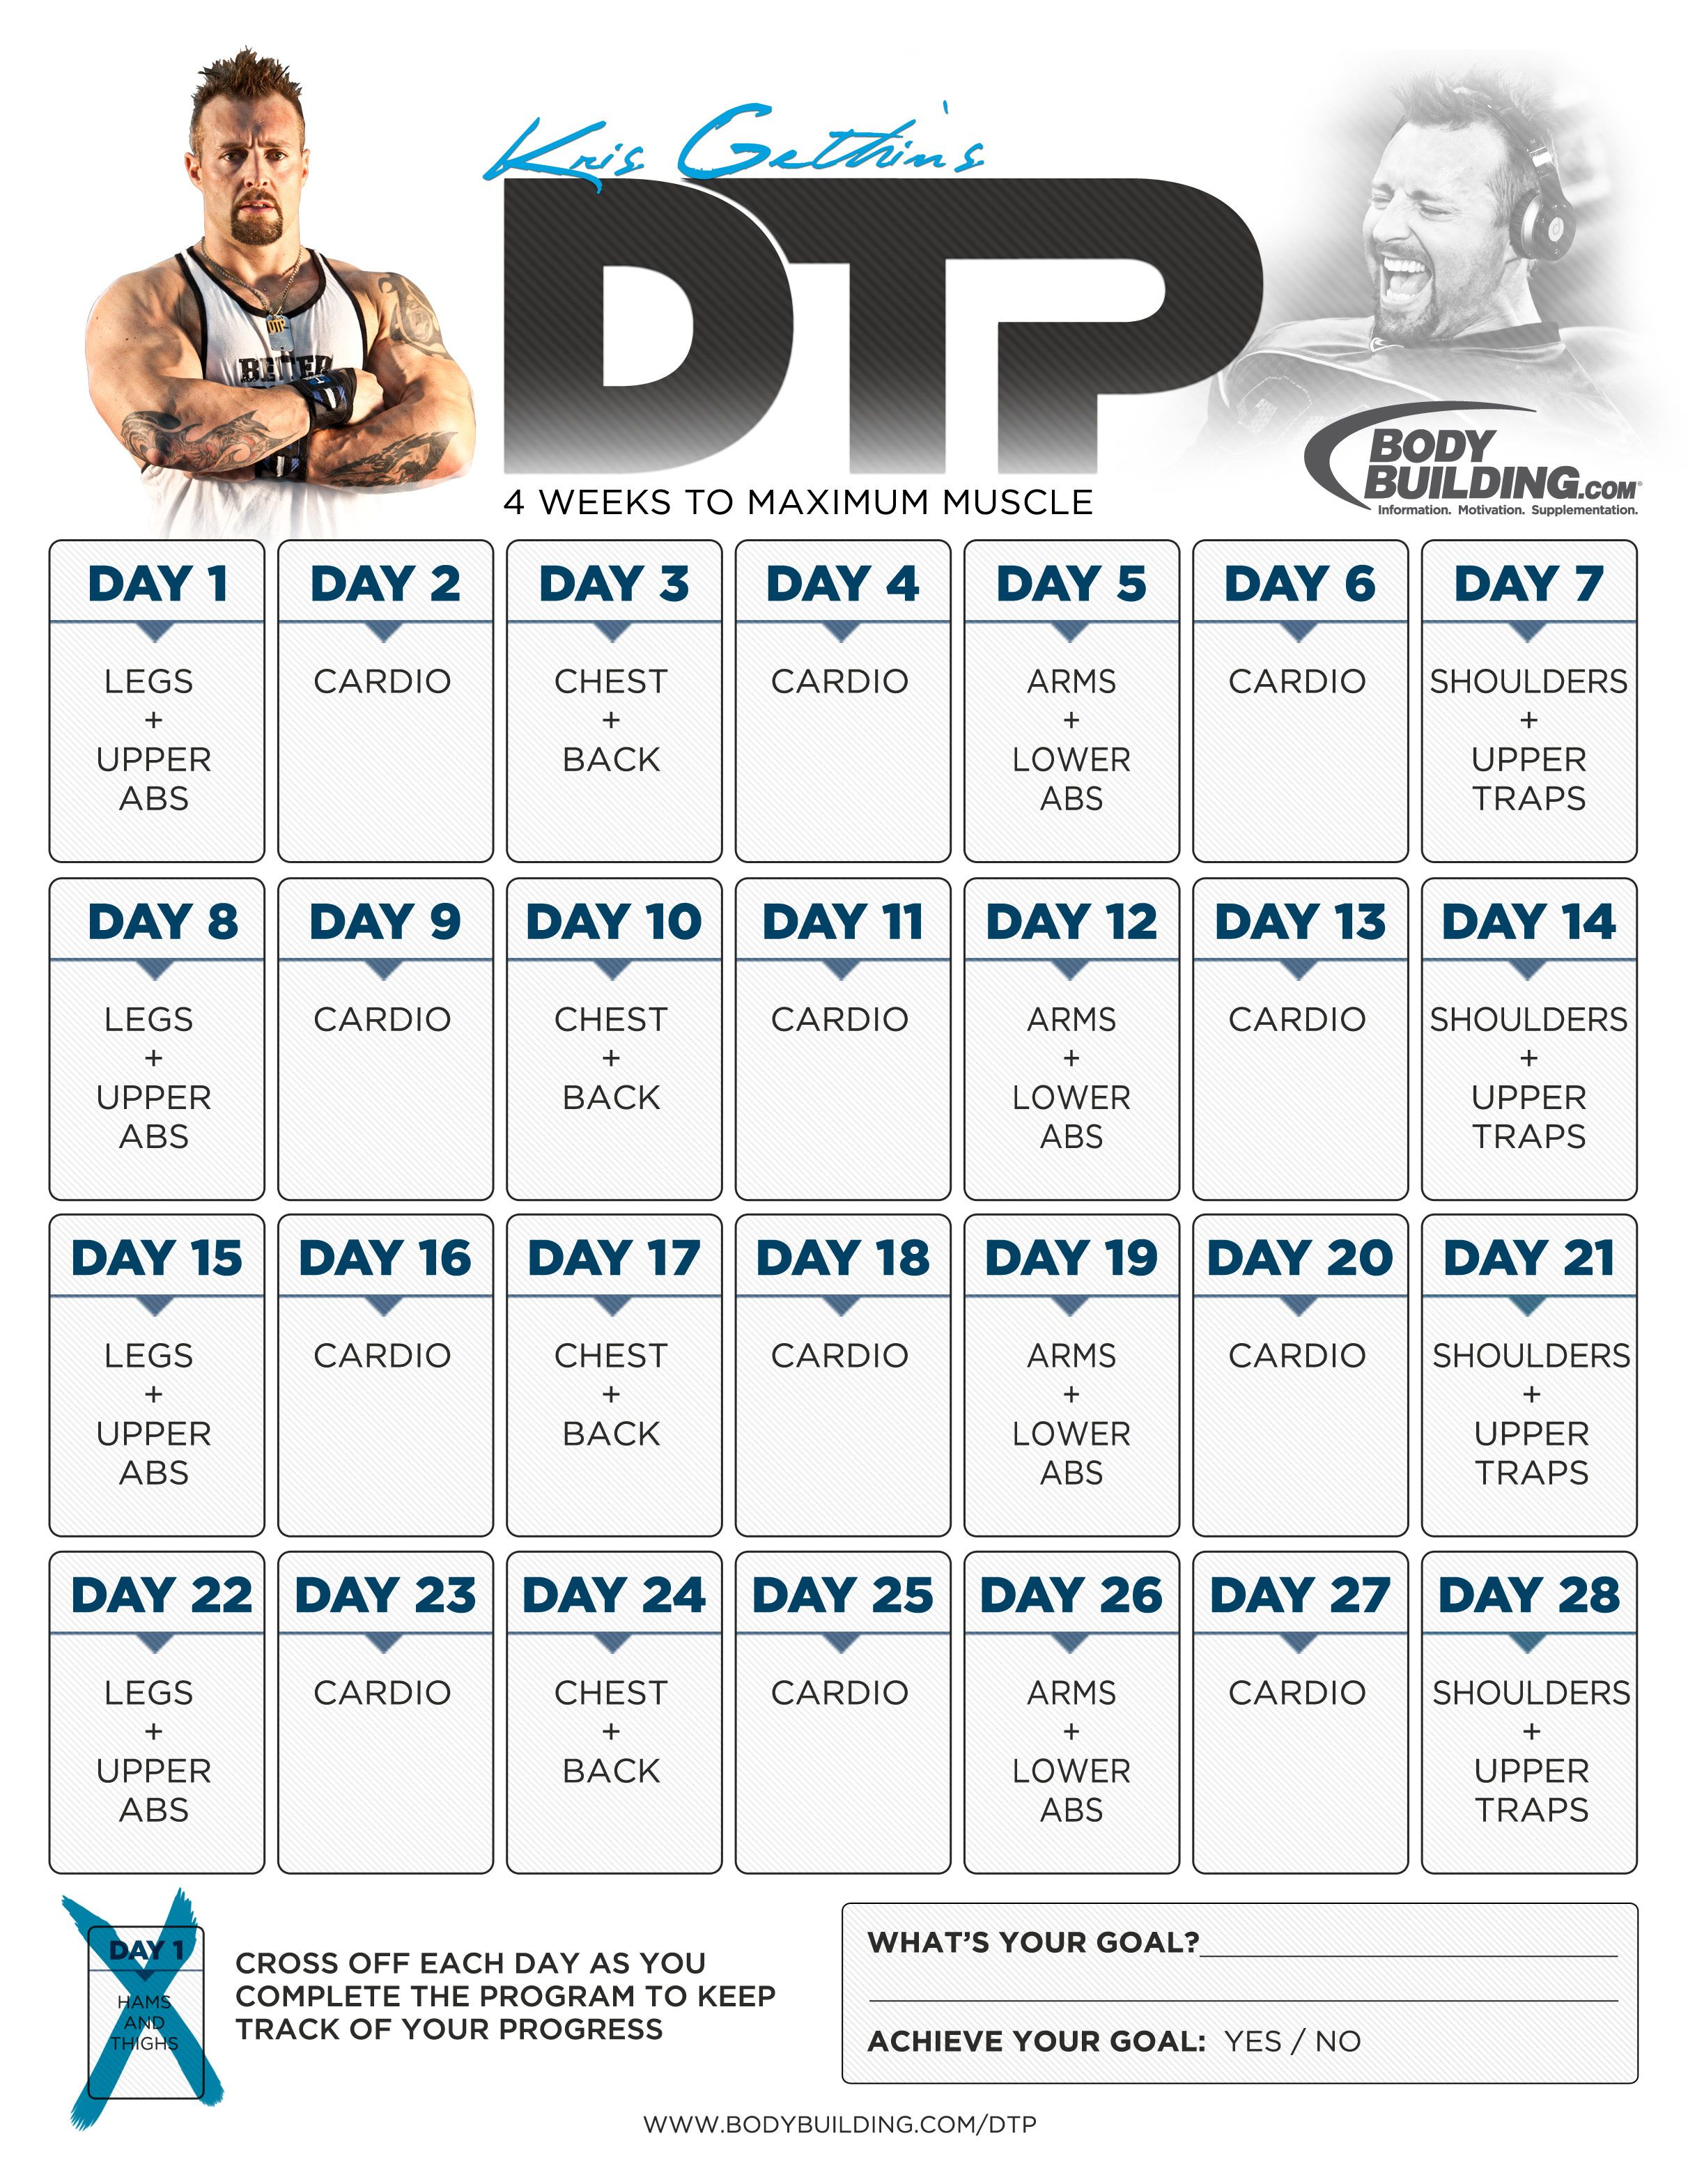 Bodybuilding kris gethin   dtp weeks to maximum muscle military workout also fitness pinterest rh